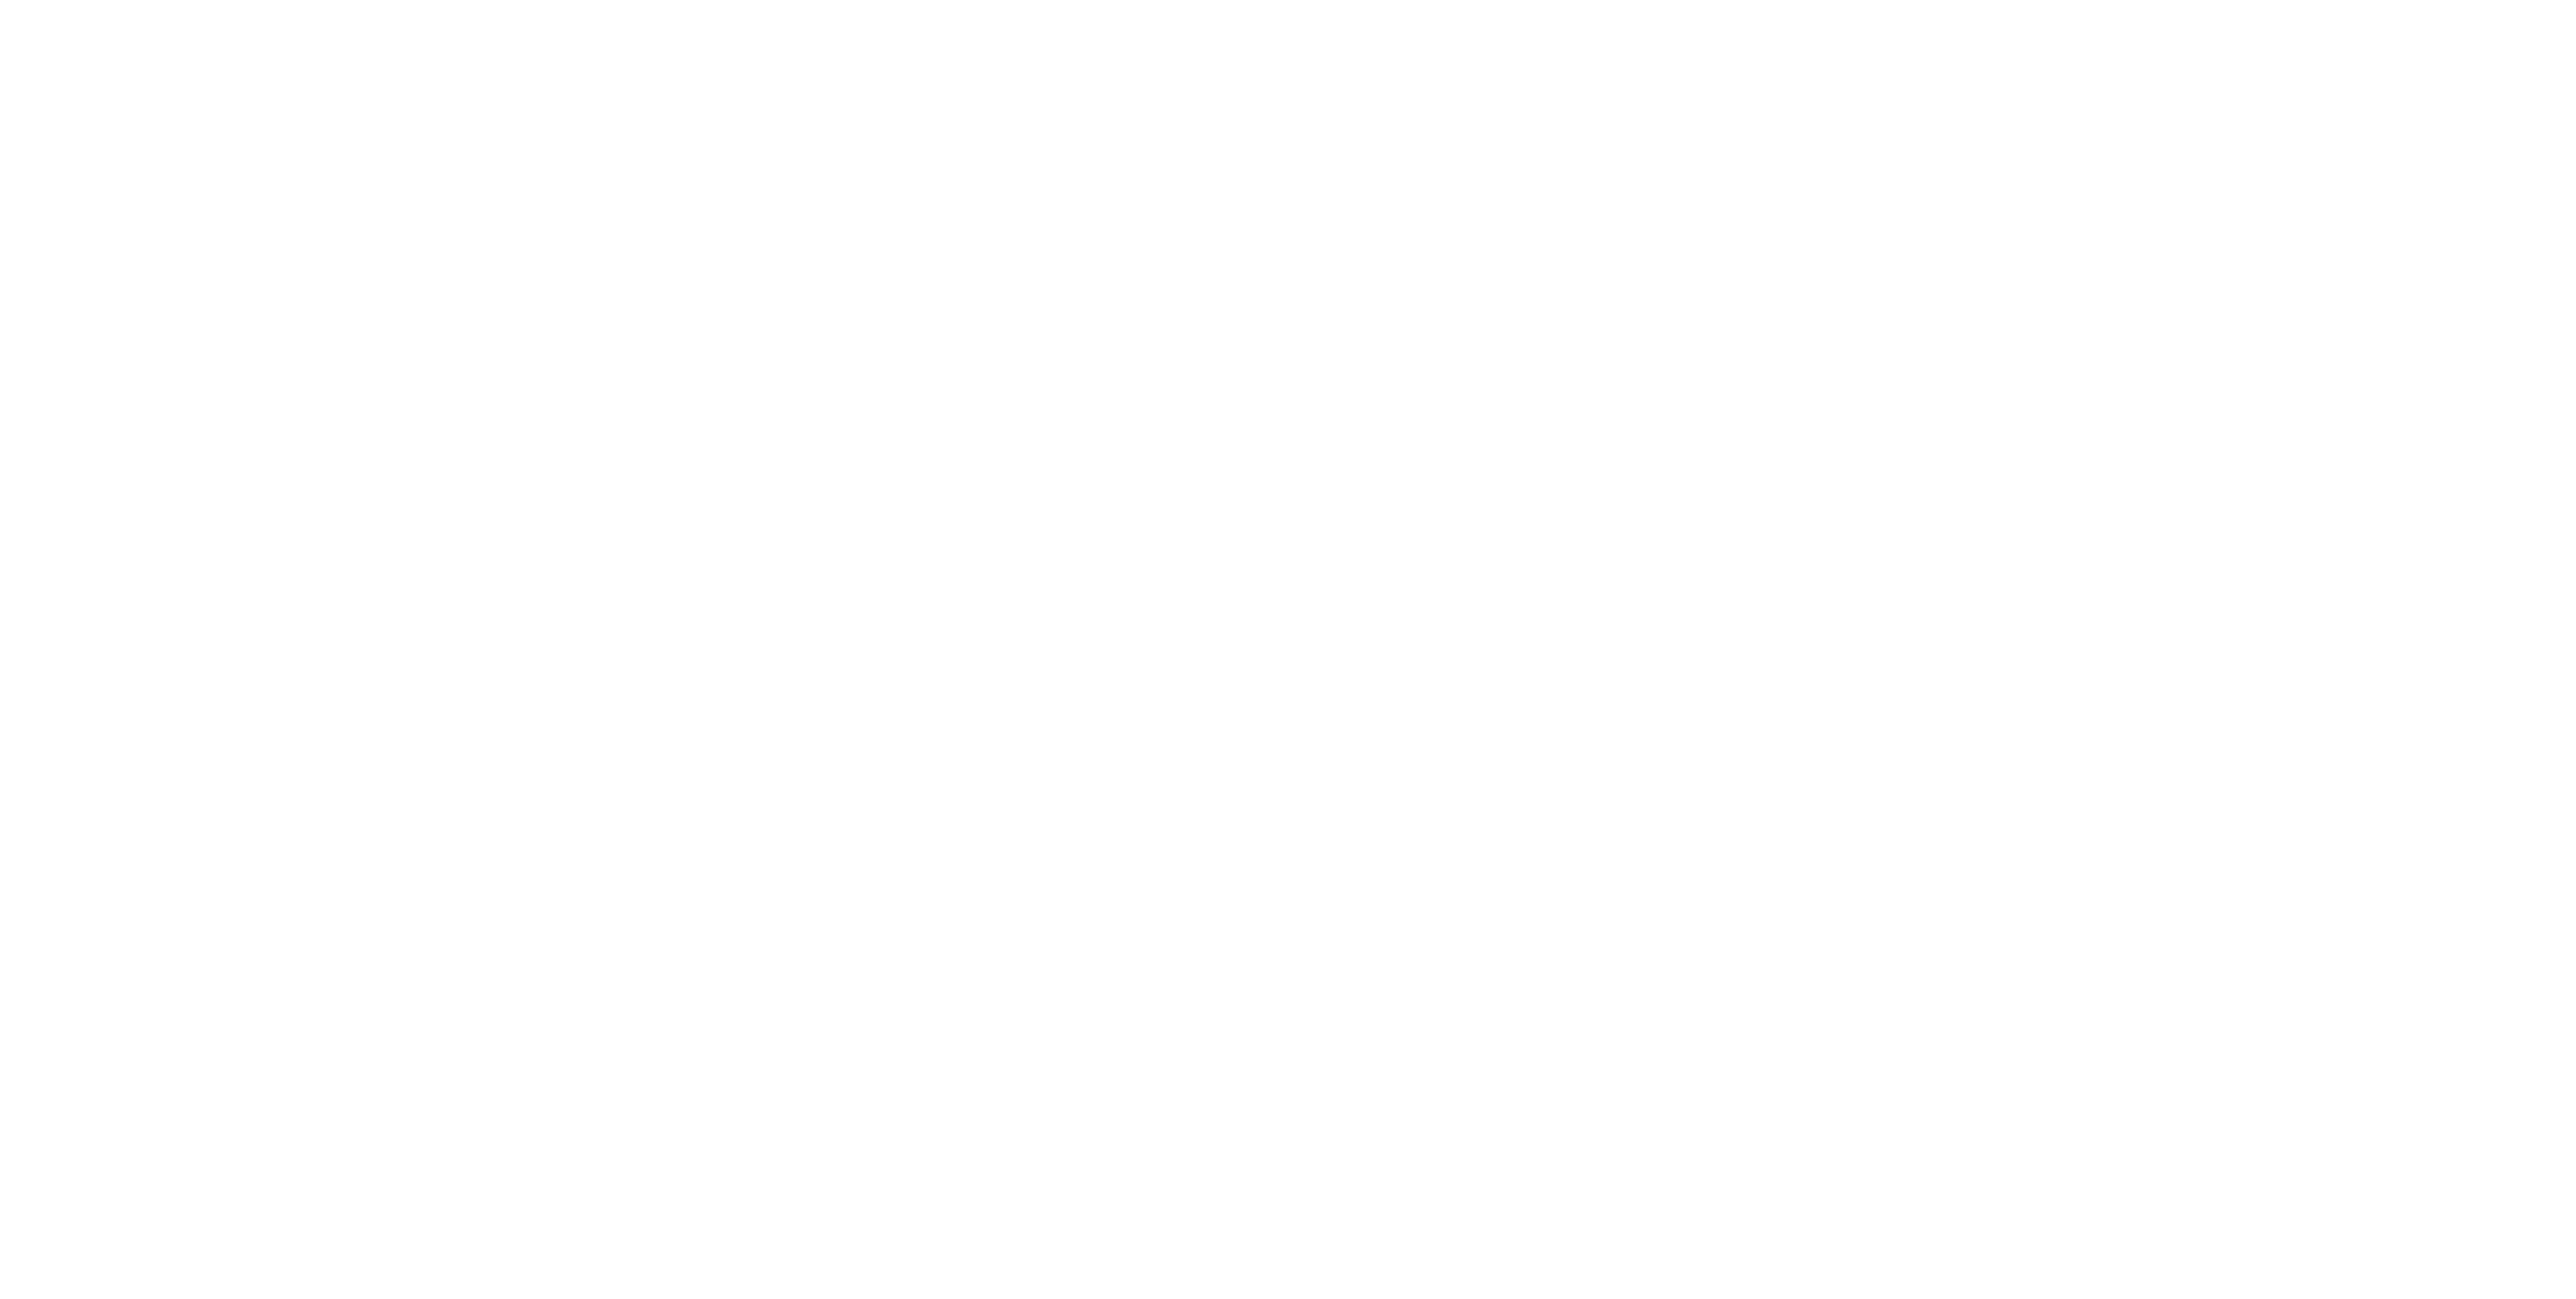 Virtuality Escape Room